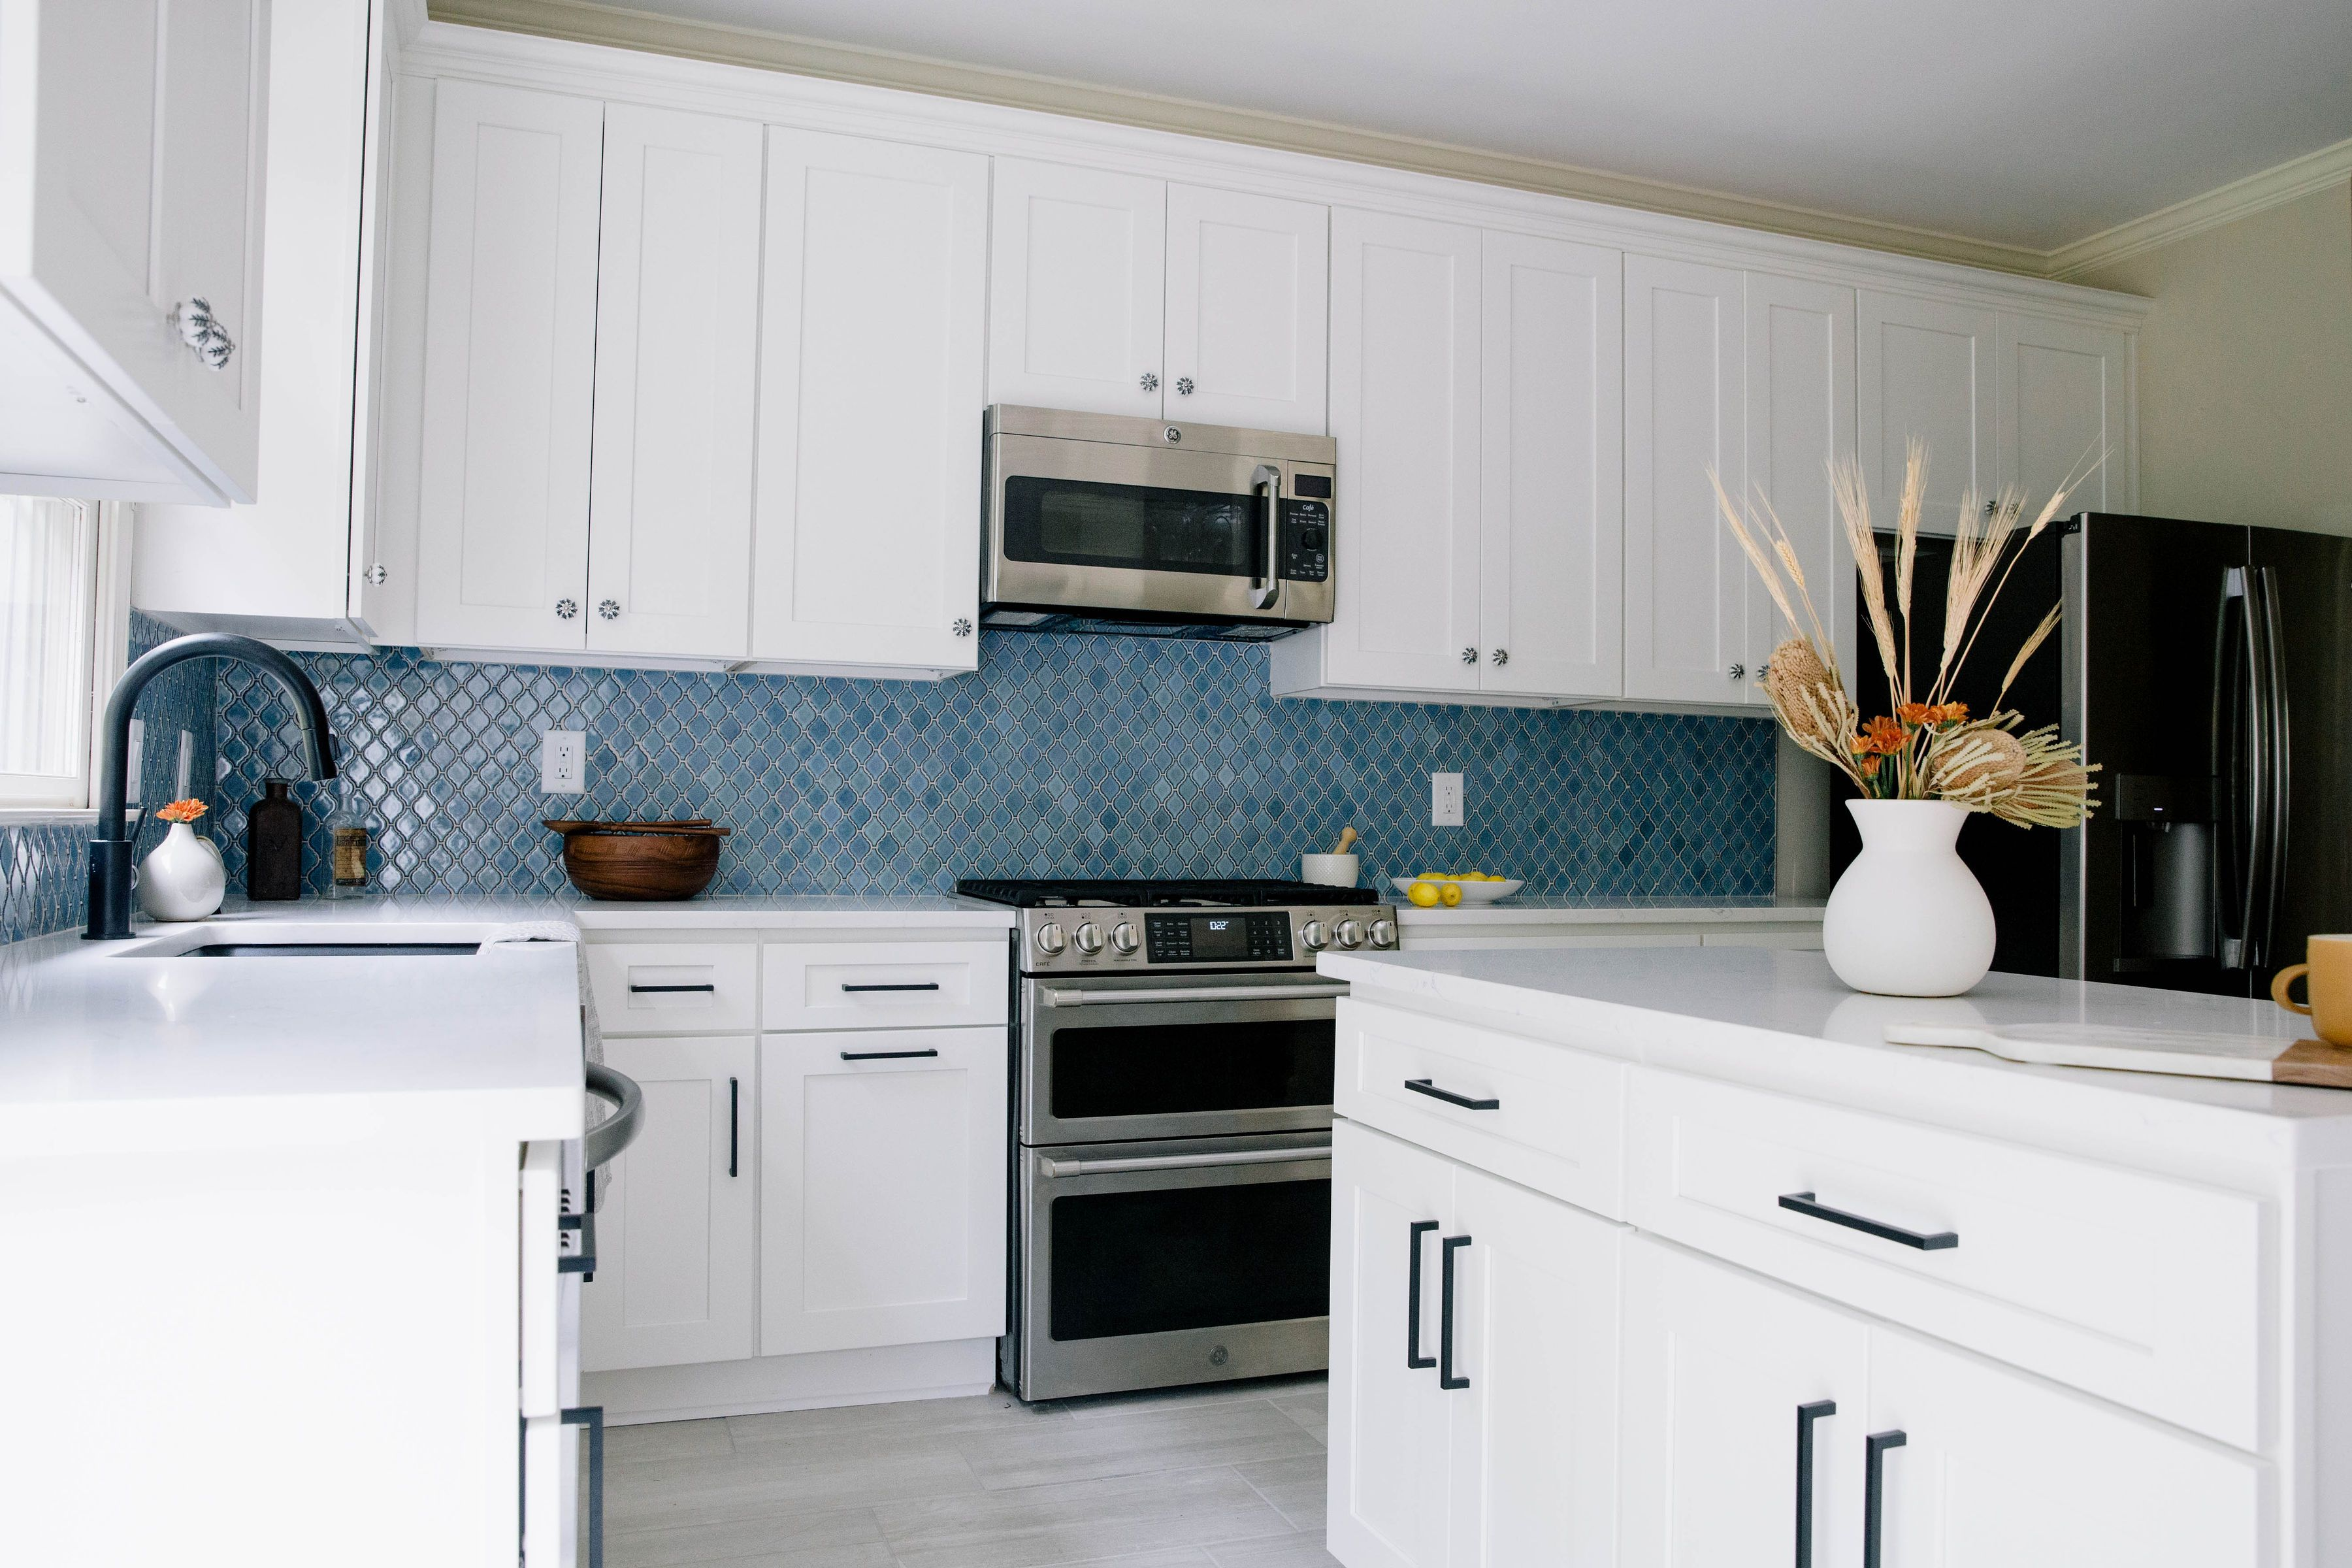 Pin By 84 Lumber On Private Residence Wakefield Sc Kitchen Cabinet Interior Best Kitchen Cabinets Cool Kitchens